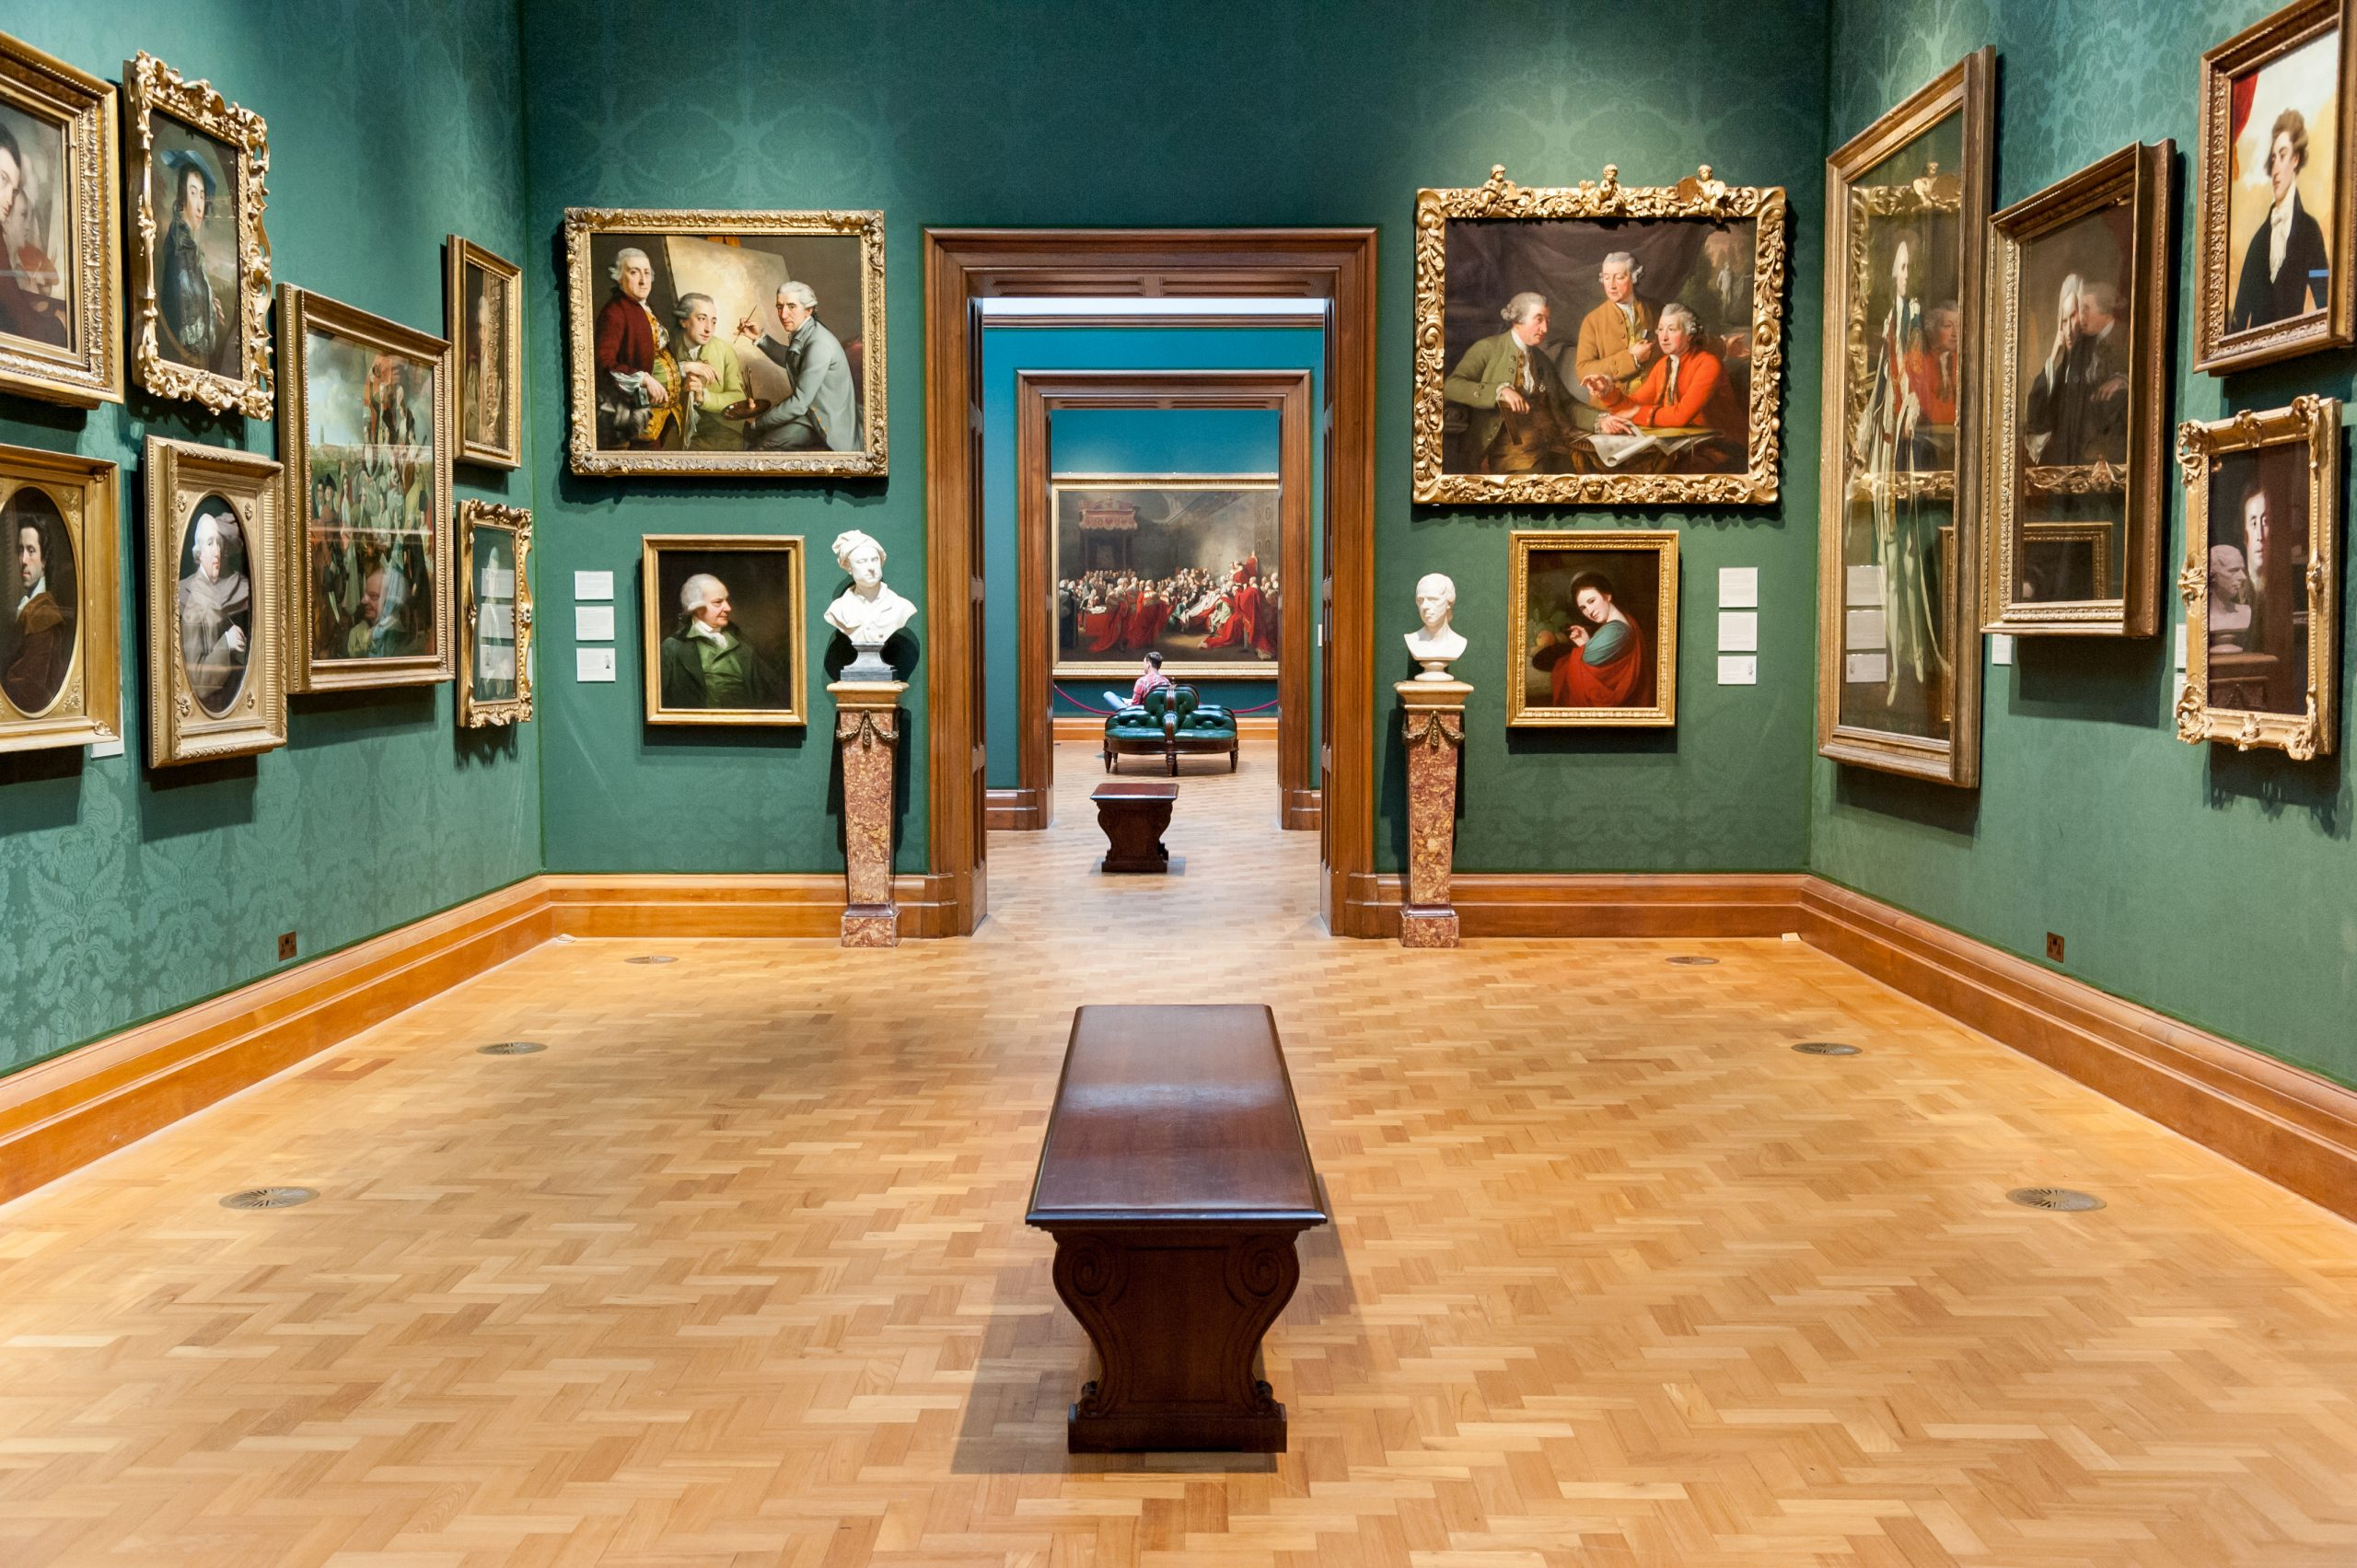 art gallery filled with historical paintings